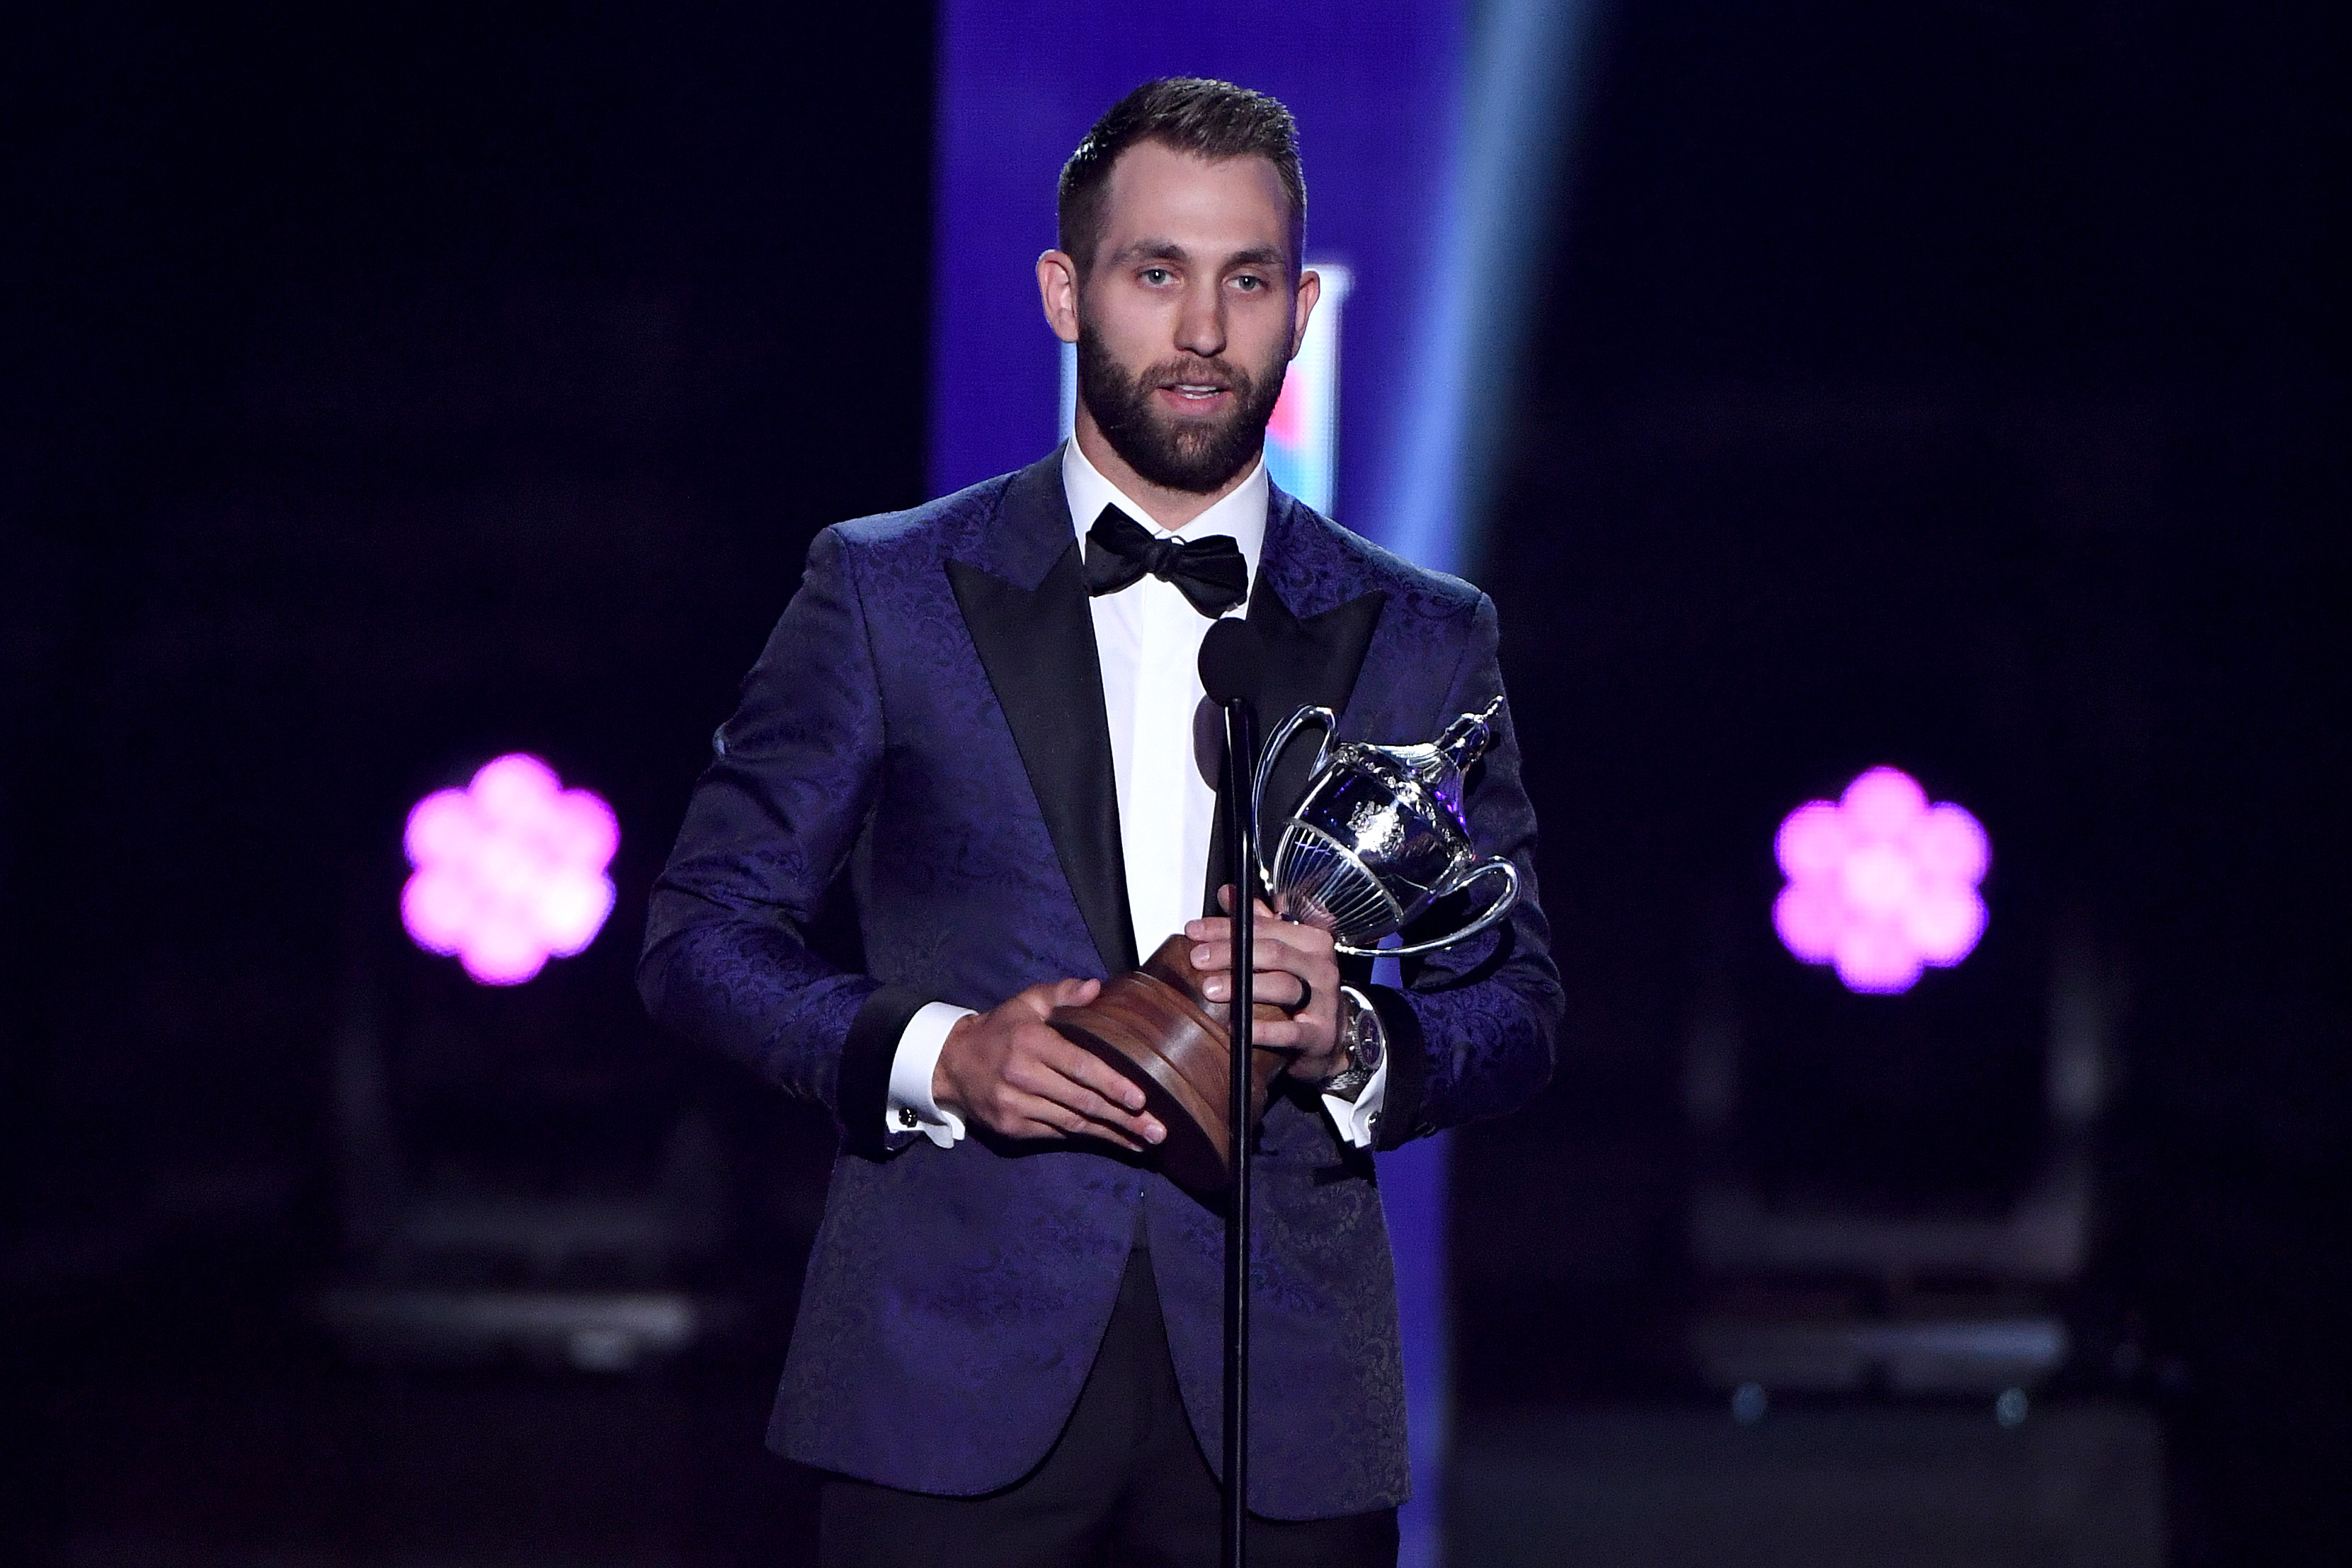 Jason Zucker of the Minnesota Wild accepts the King Clancy Memorial Trophy during the 2019 NHL Awards at the Mandalay Bay Events Center on June 19, 2019 in Las Vegas, Nevada.